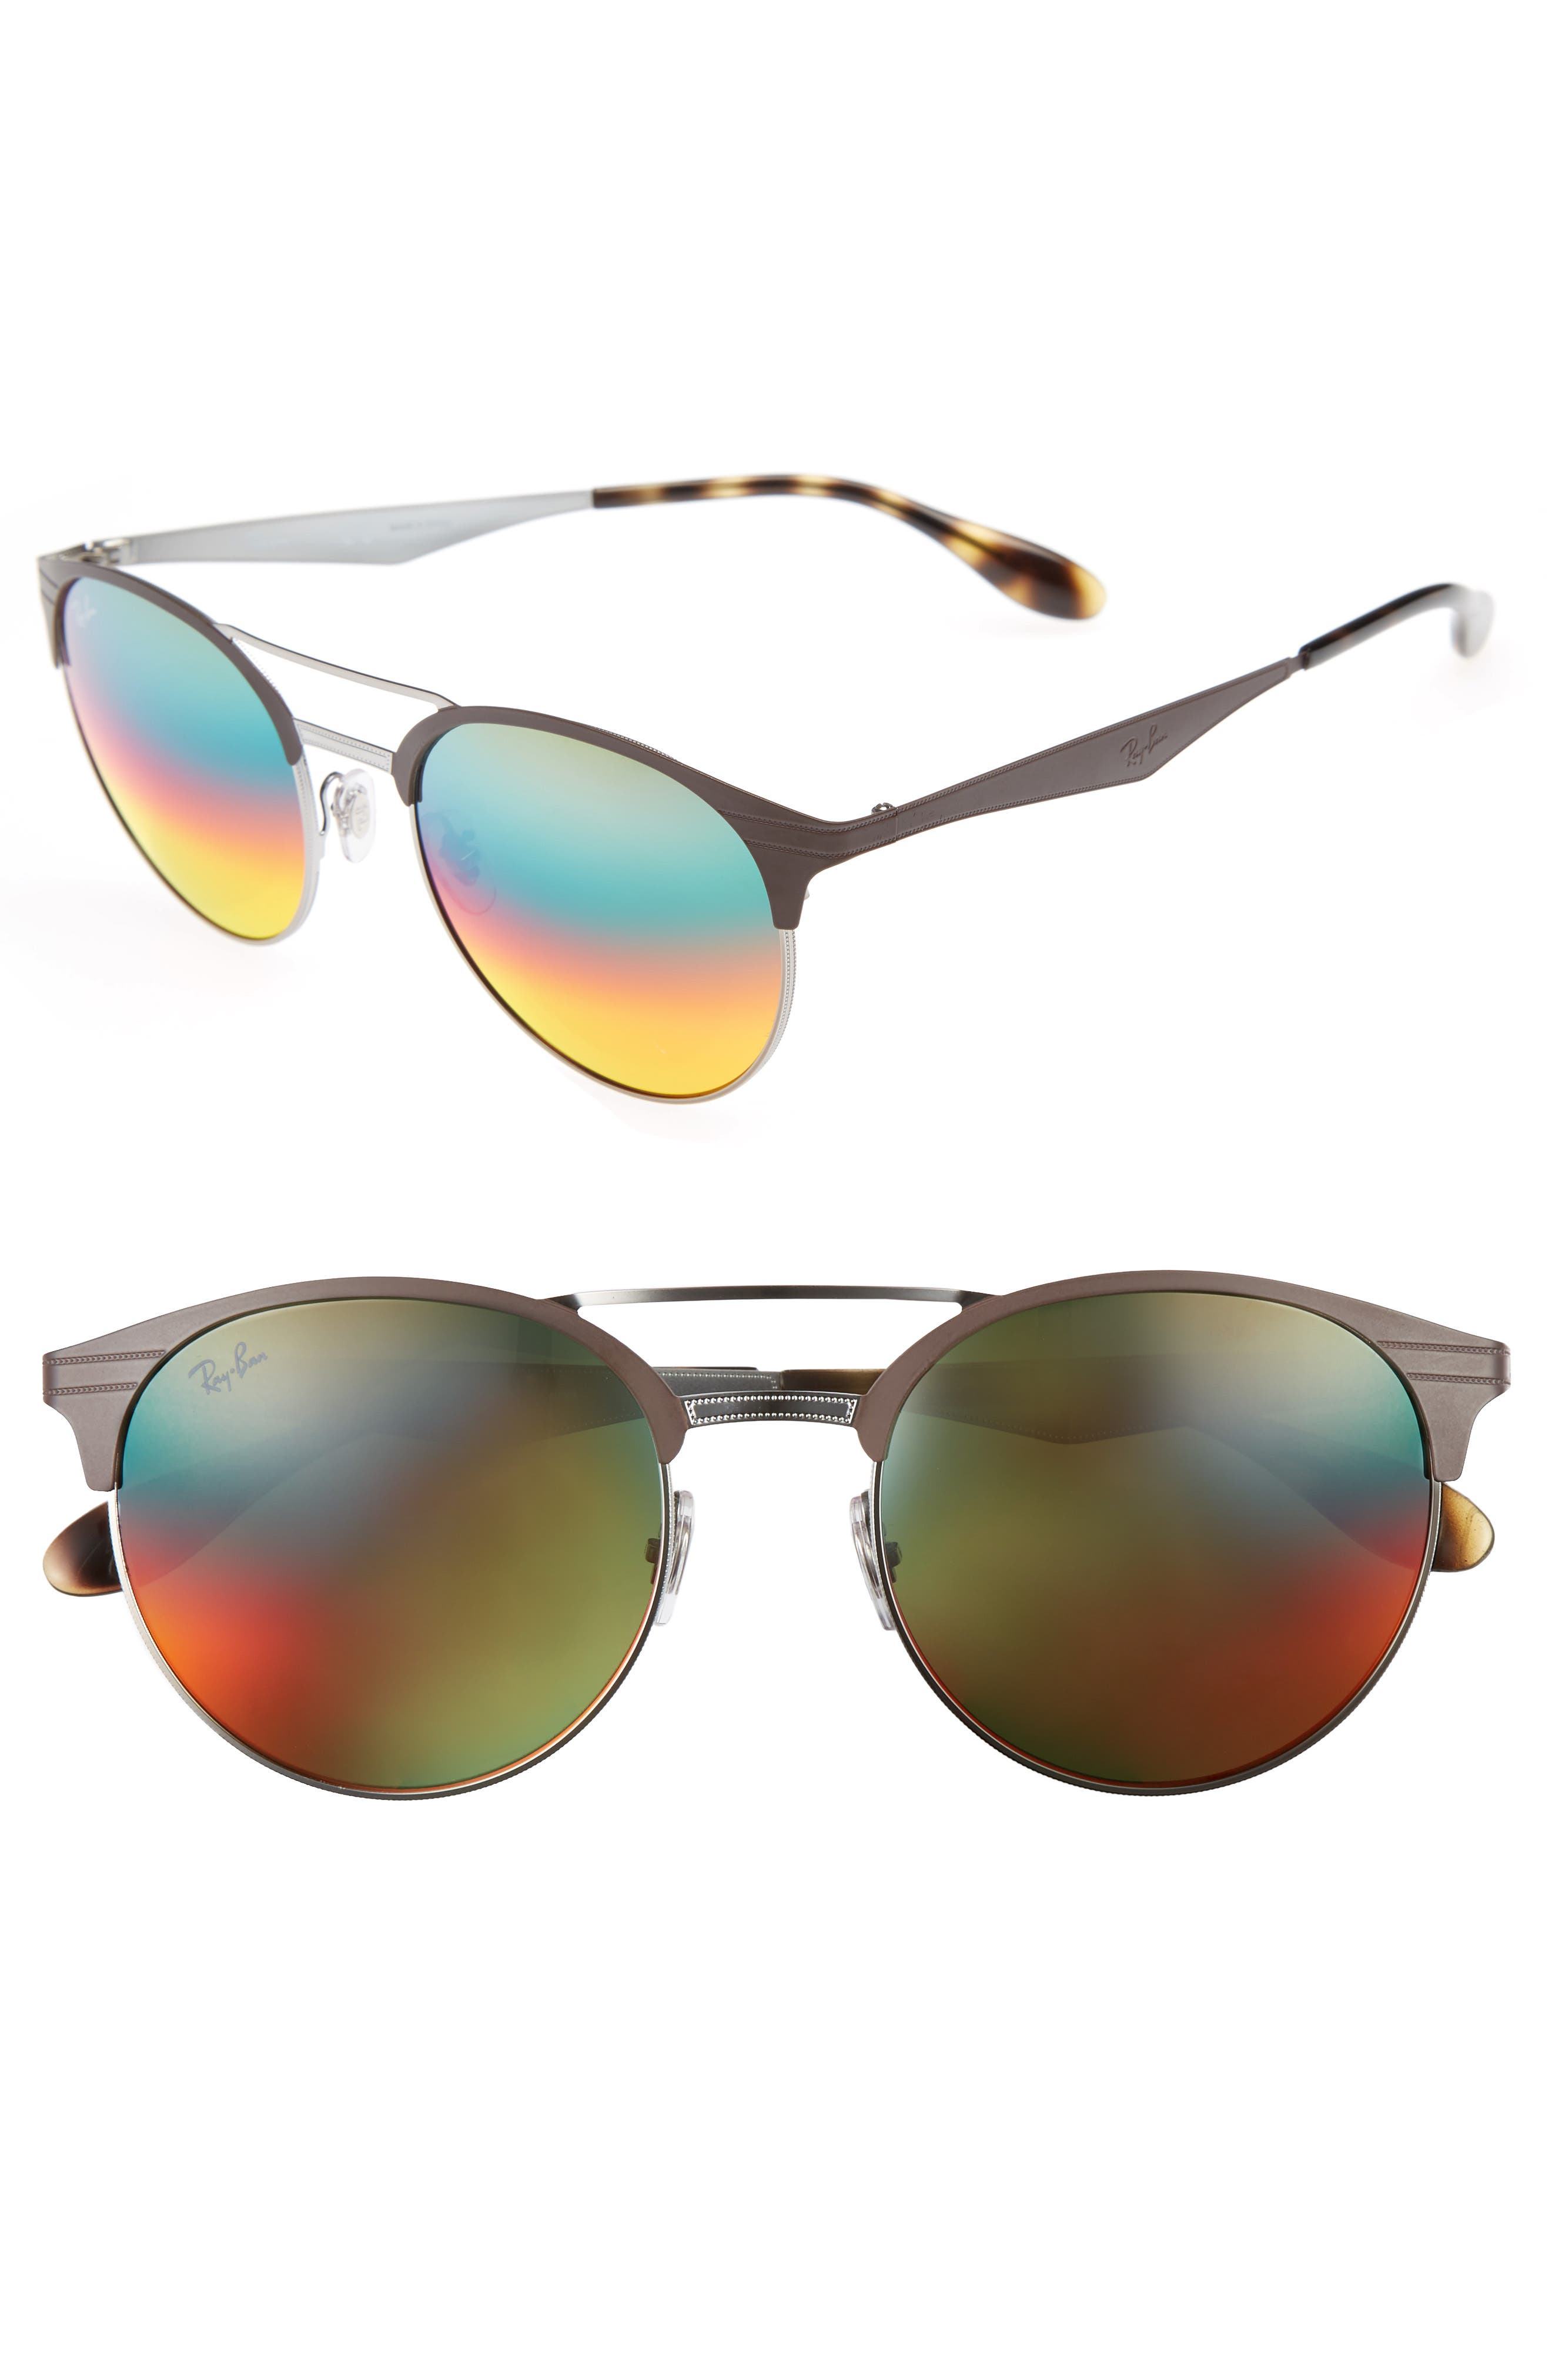 Main Image - Ray-Ban Highstreet 54mm Round Sunglasses